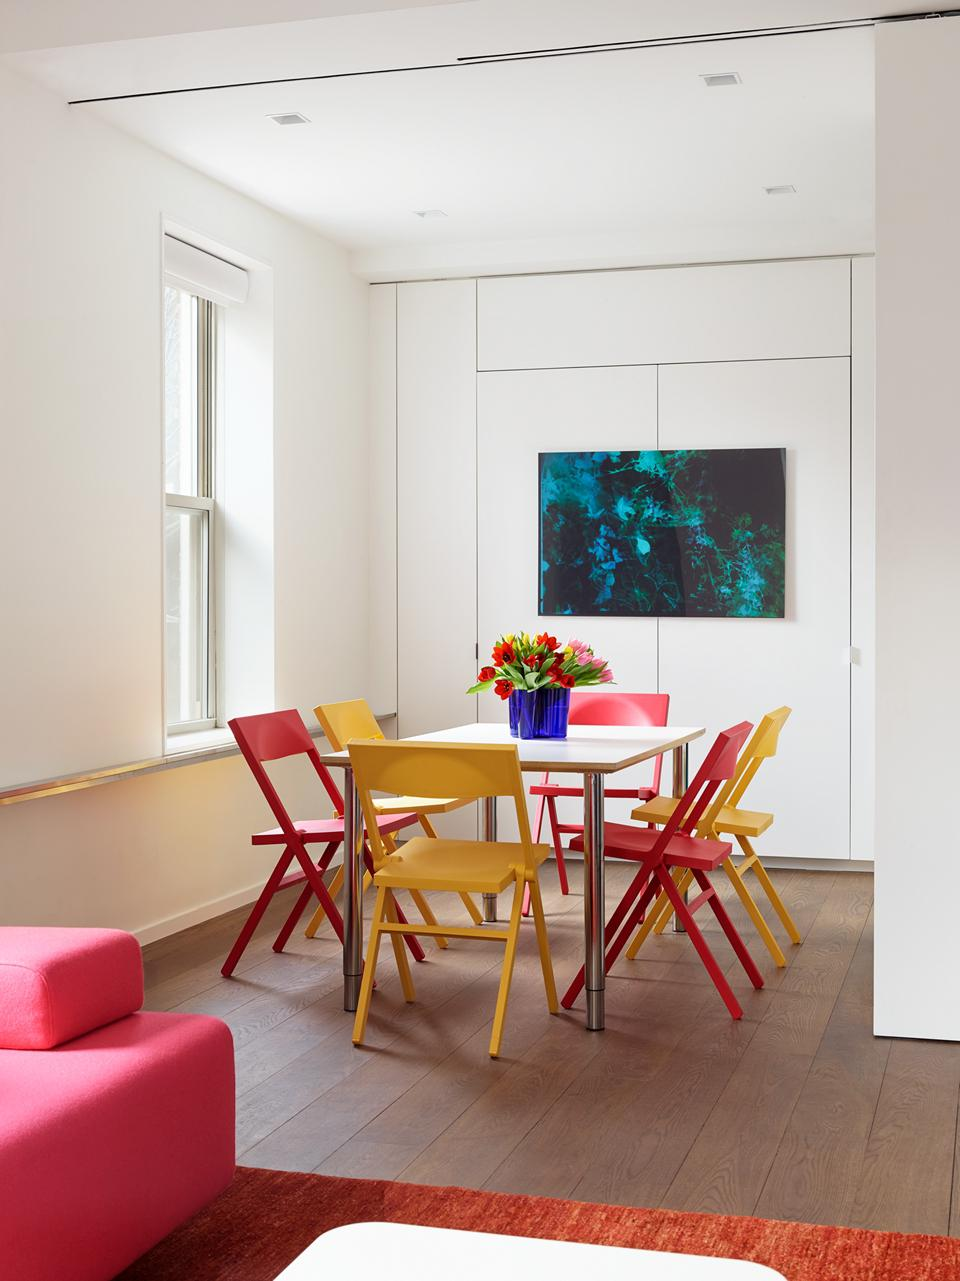 The dining nook in a Manhattan apartment.